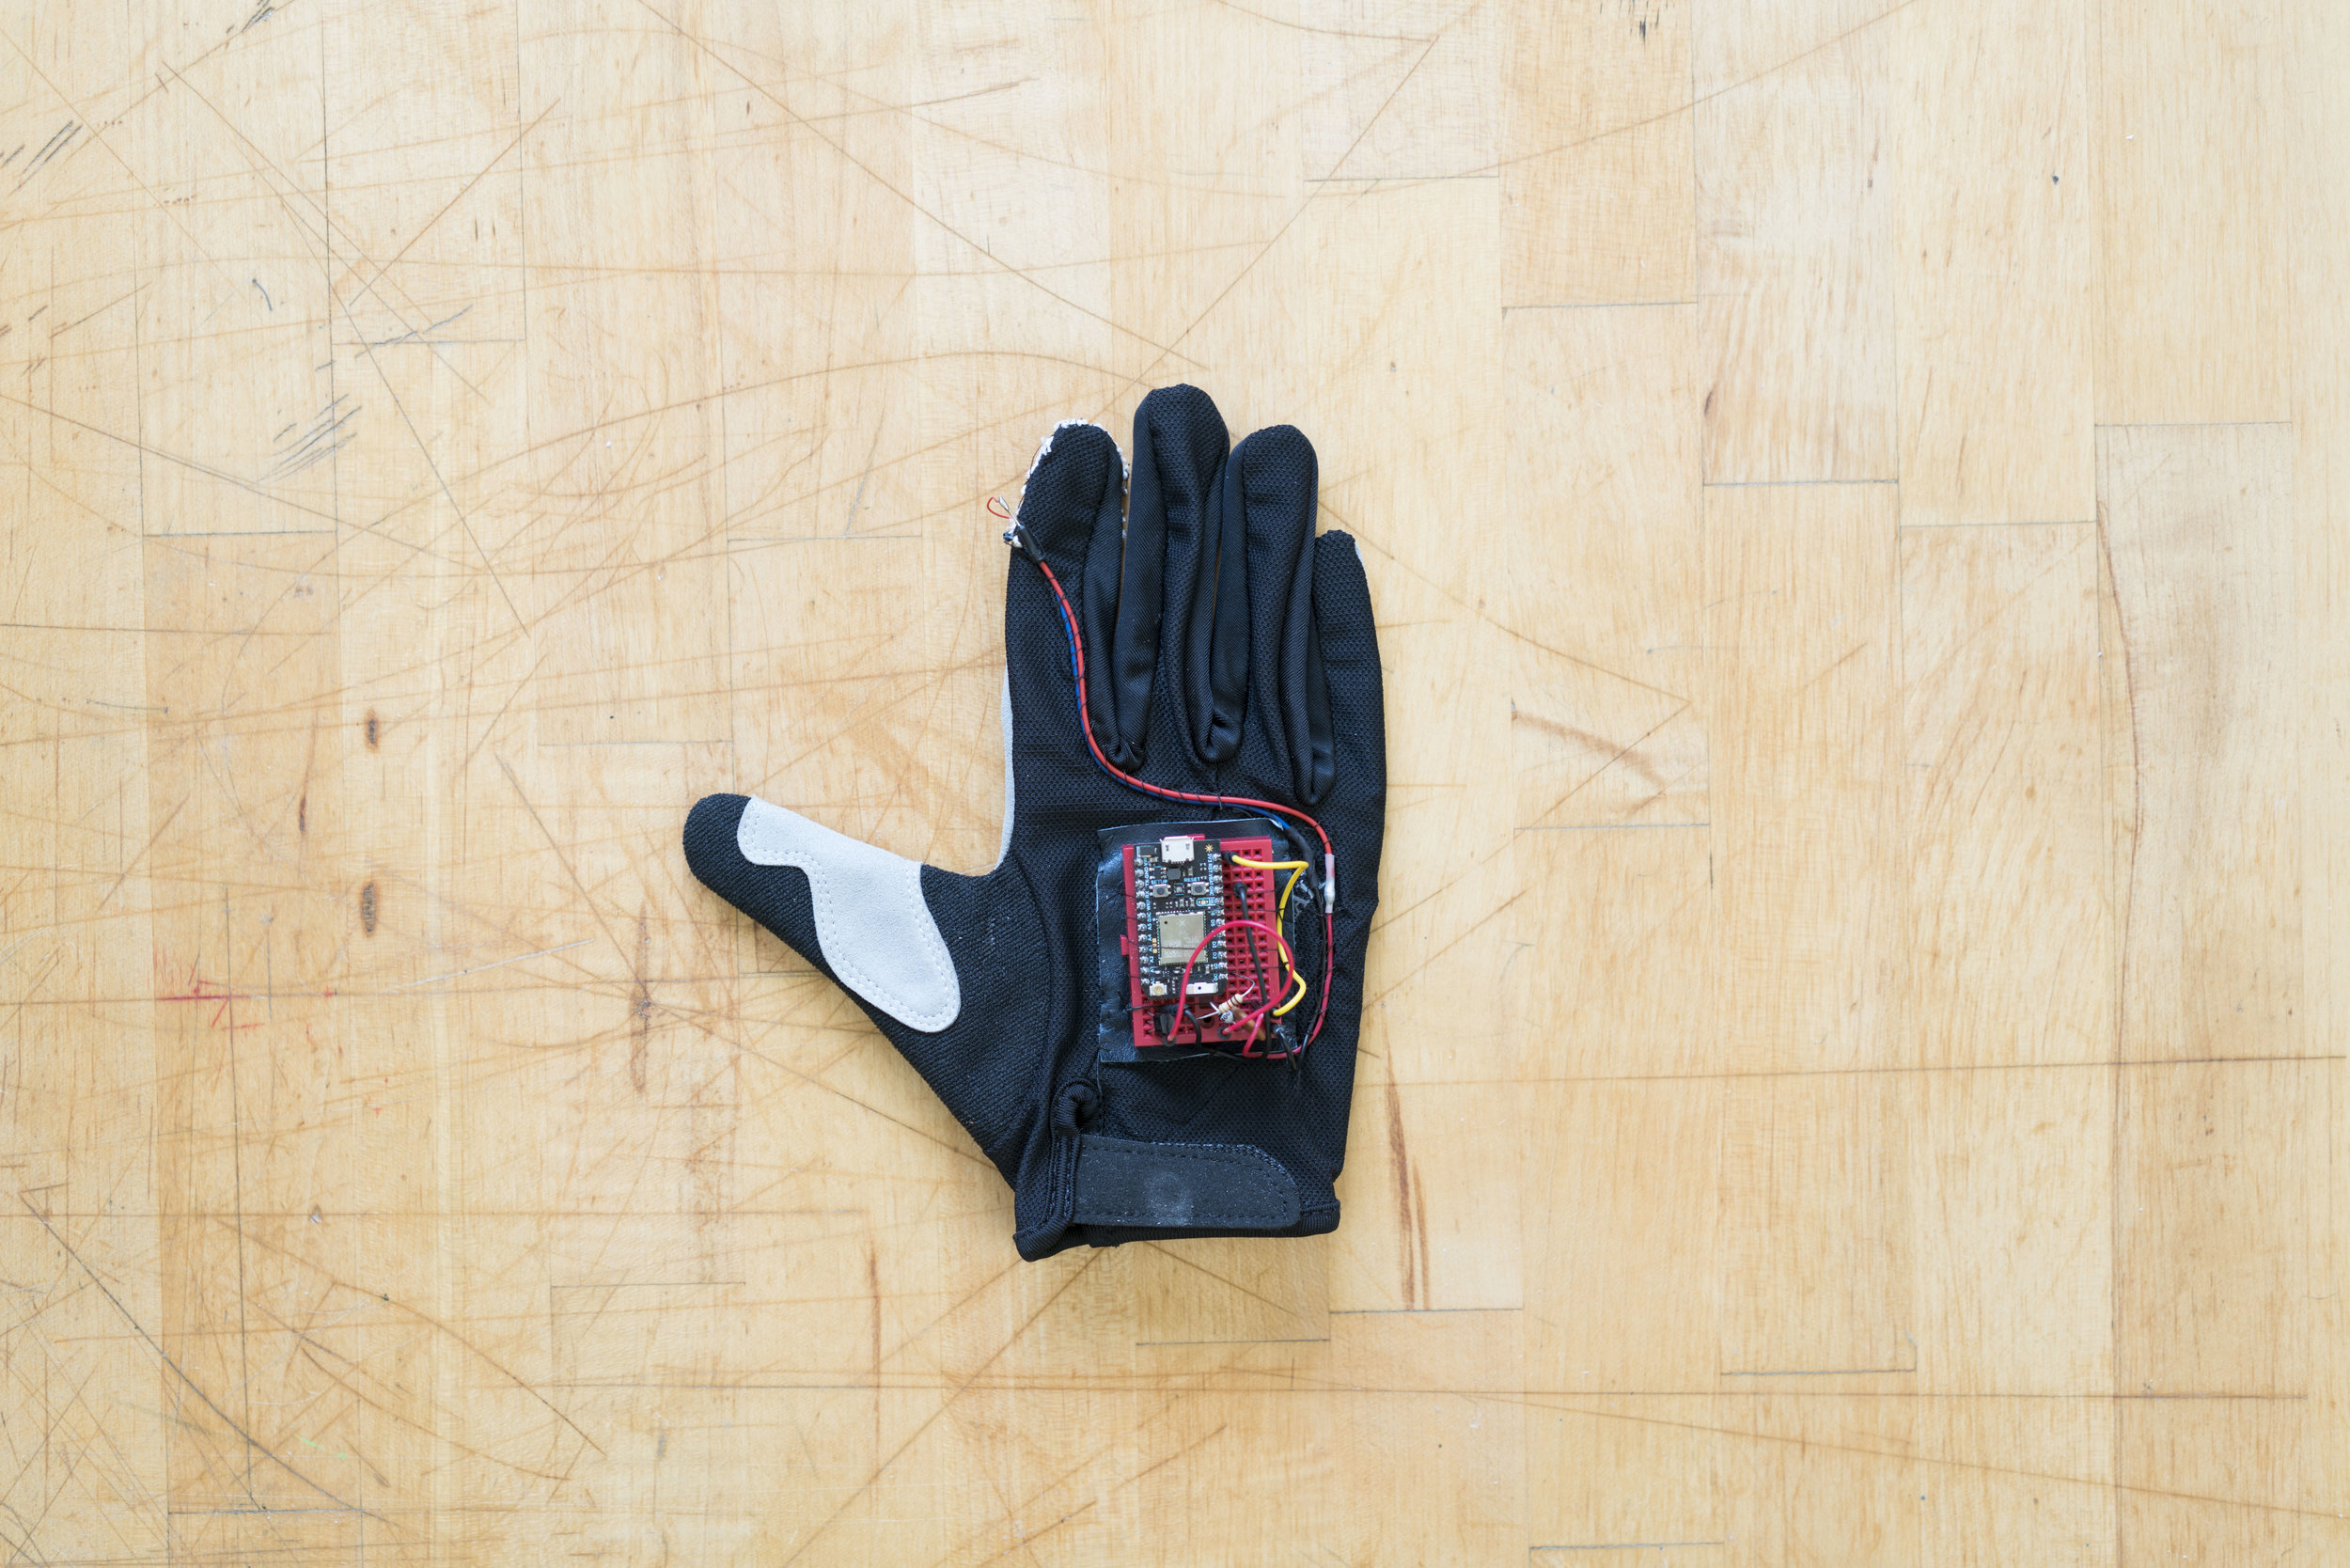 Drafter— Haptic Feedback gloves for AR & VR   physical prototyping